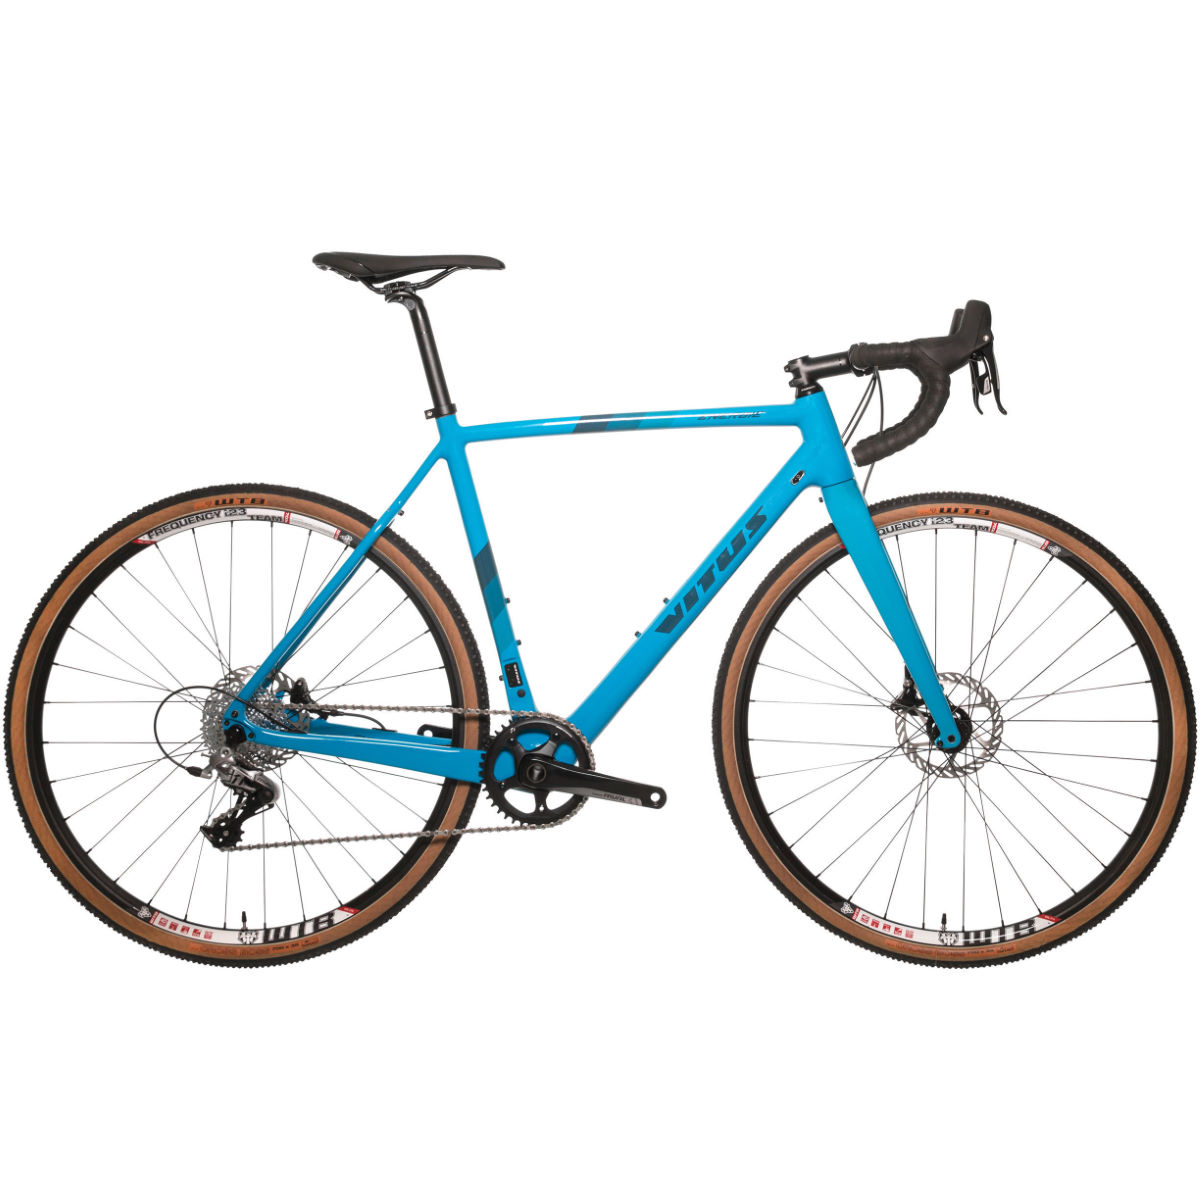 Vitus Energie CR Cyclocross Bike (Rival 1x11 - 2019)